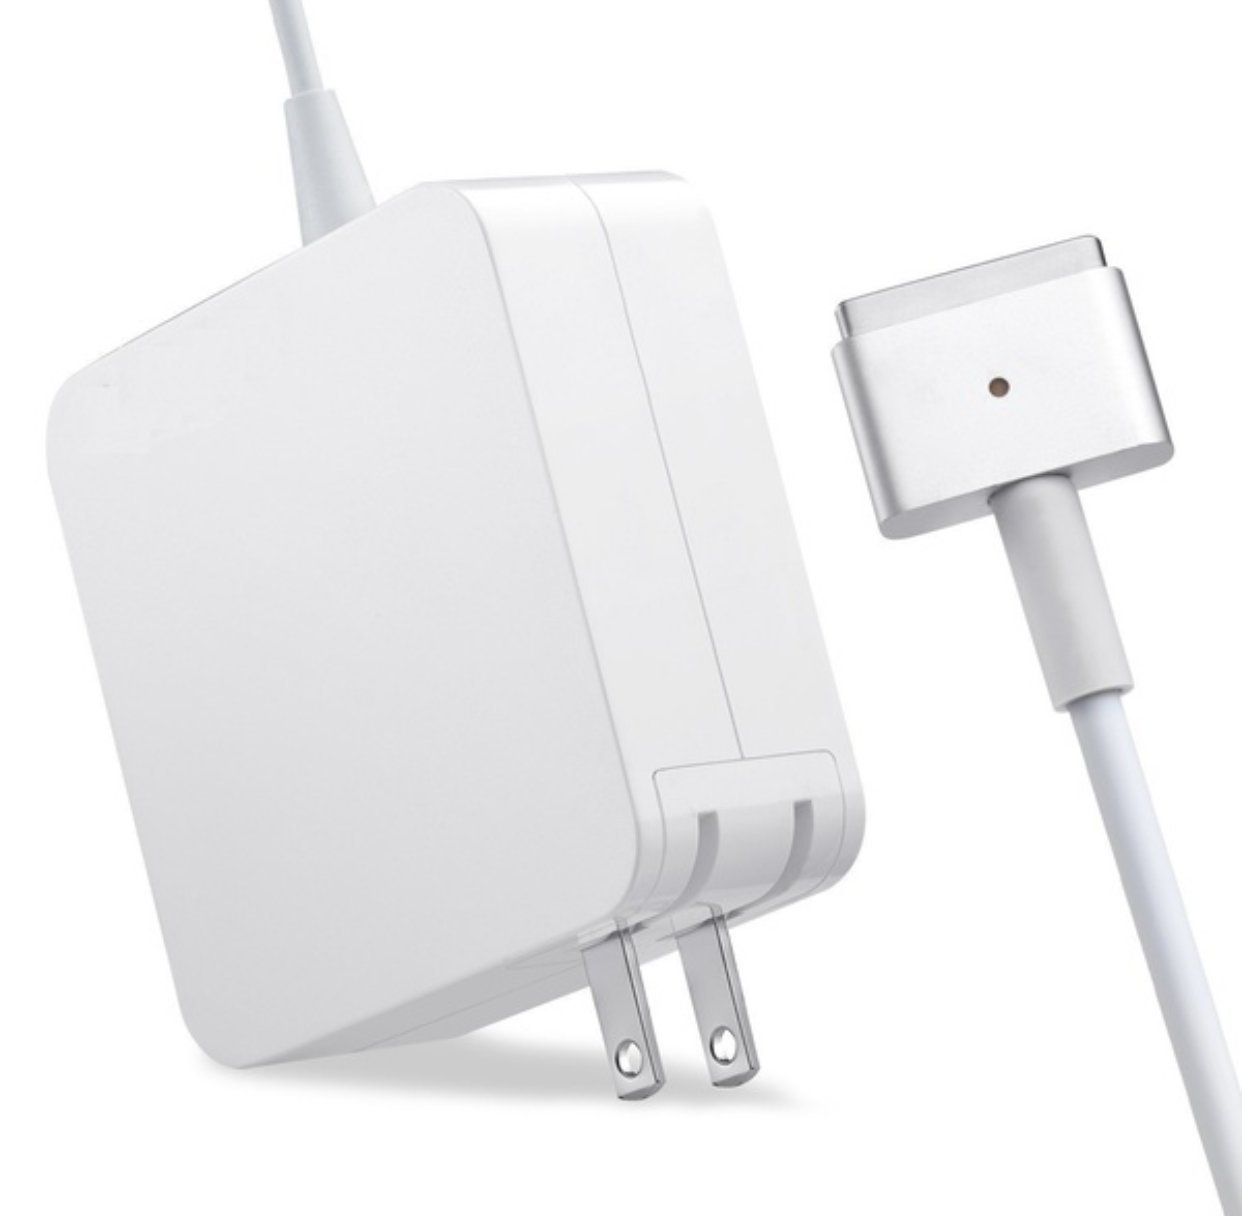 MacBook Pro Charger R60-T,Replacement MacBook Charger 60W Magsafe 2 Magnetic T-Tip Power Adapter Charger for Apple MacBook Pro 13-inch Retina Display-After Late 2012